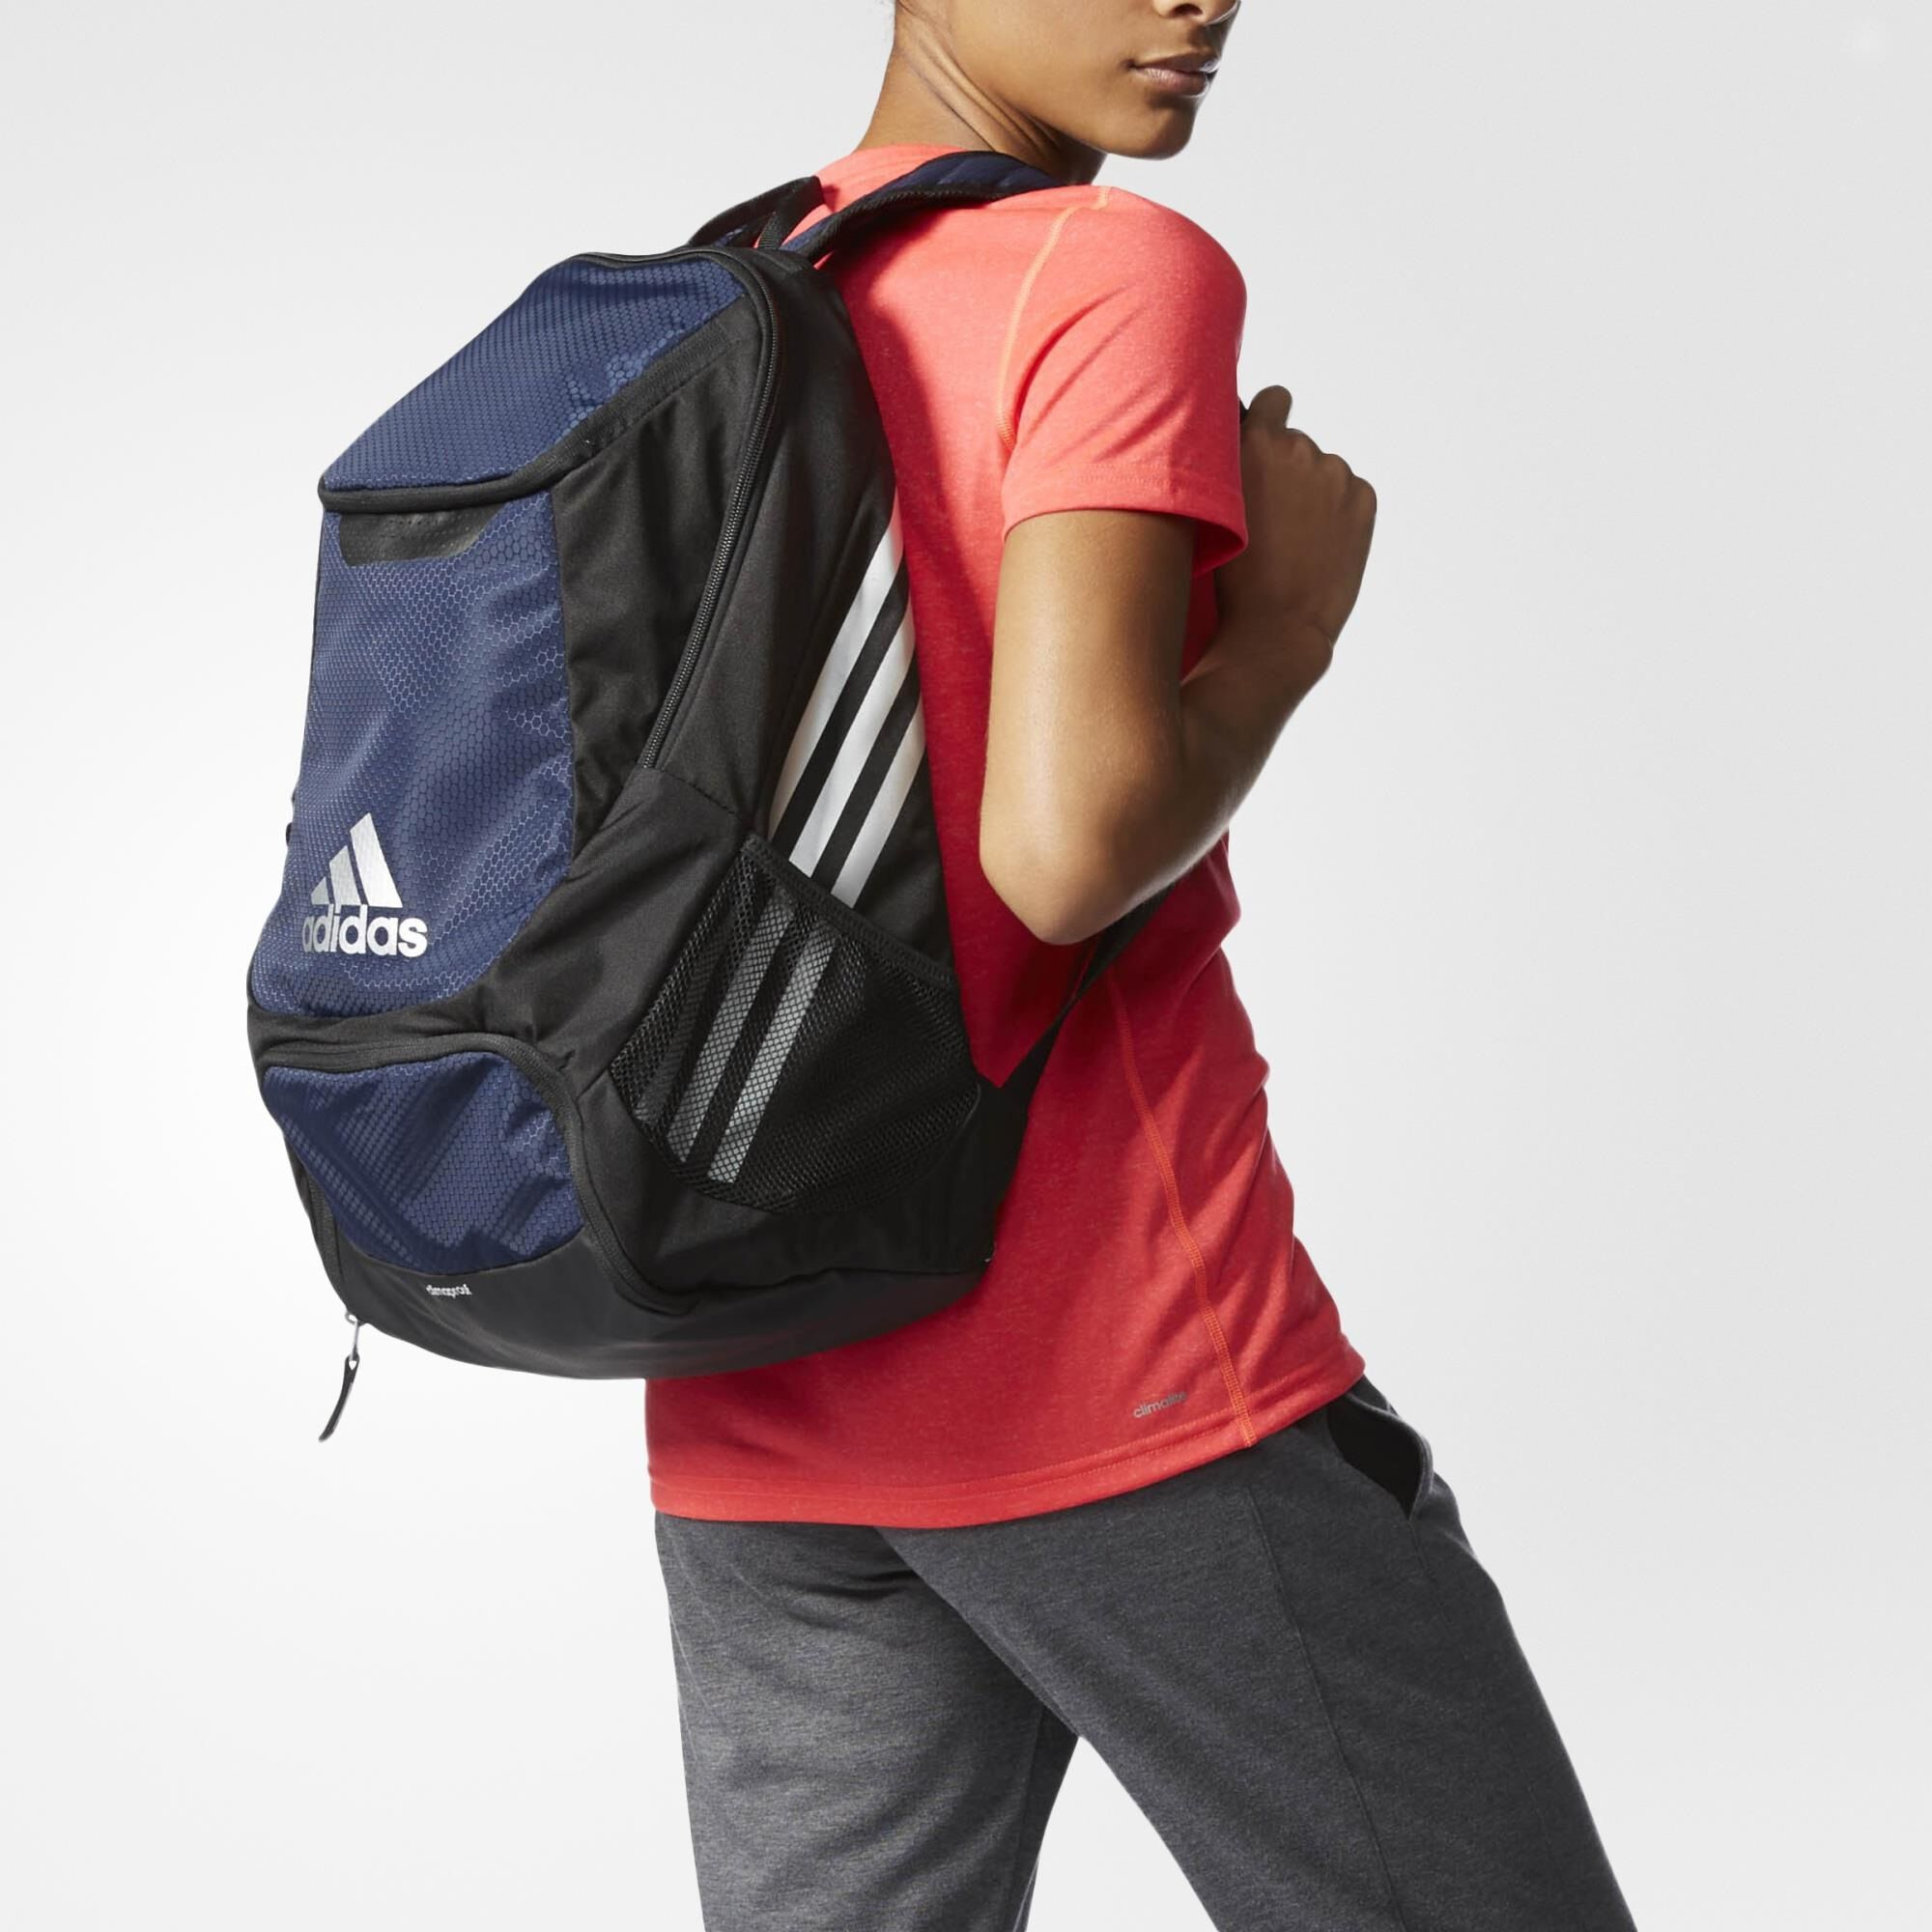 adidas champs burns backpack